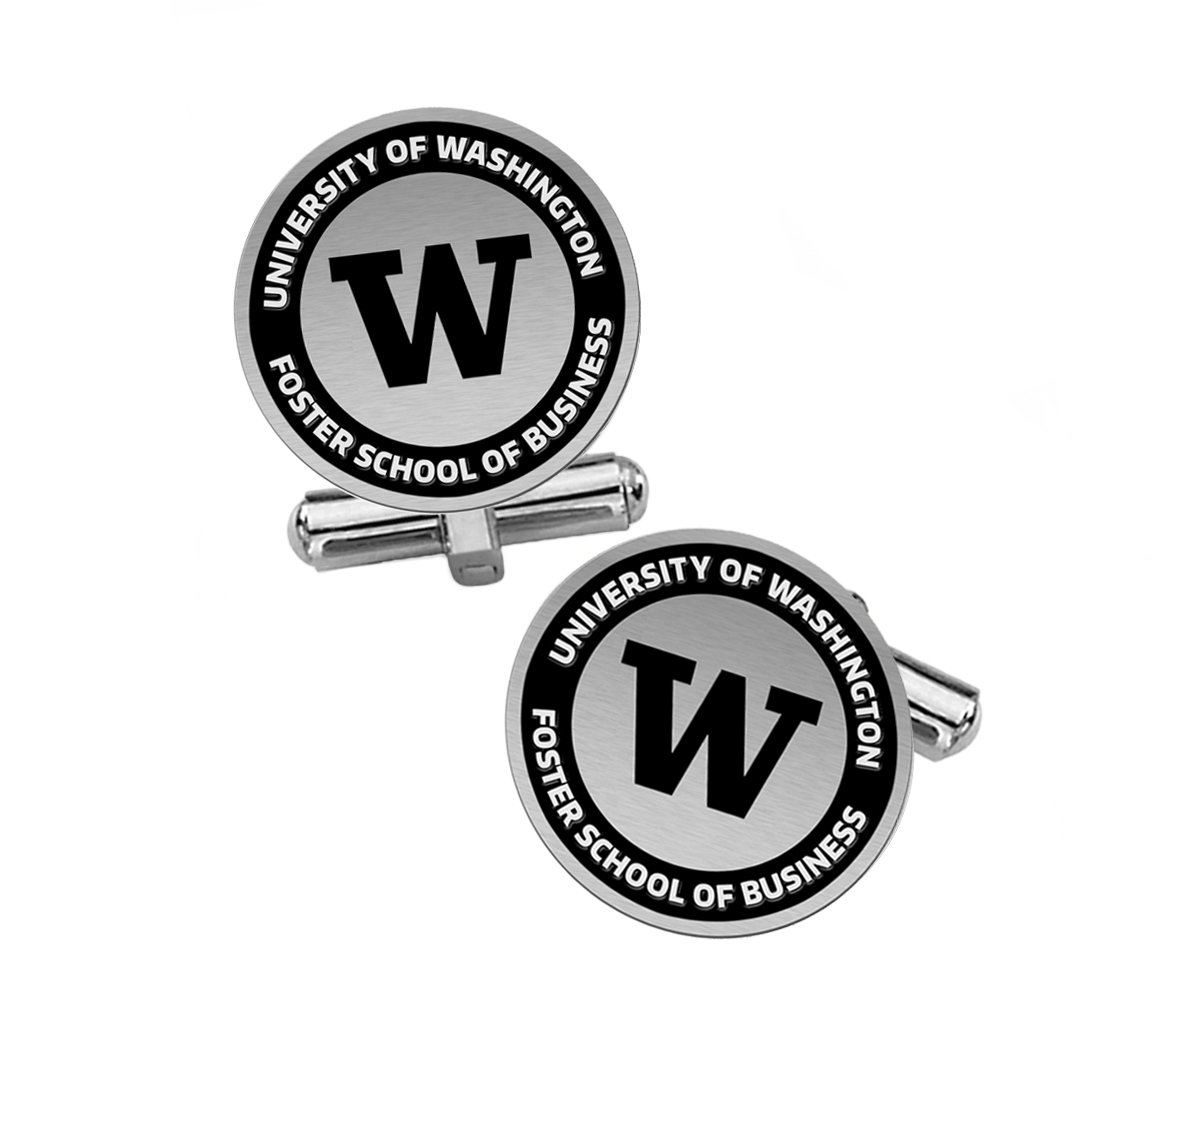 Foster School of Business Cufflinks | University of Washington by College Jewelry